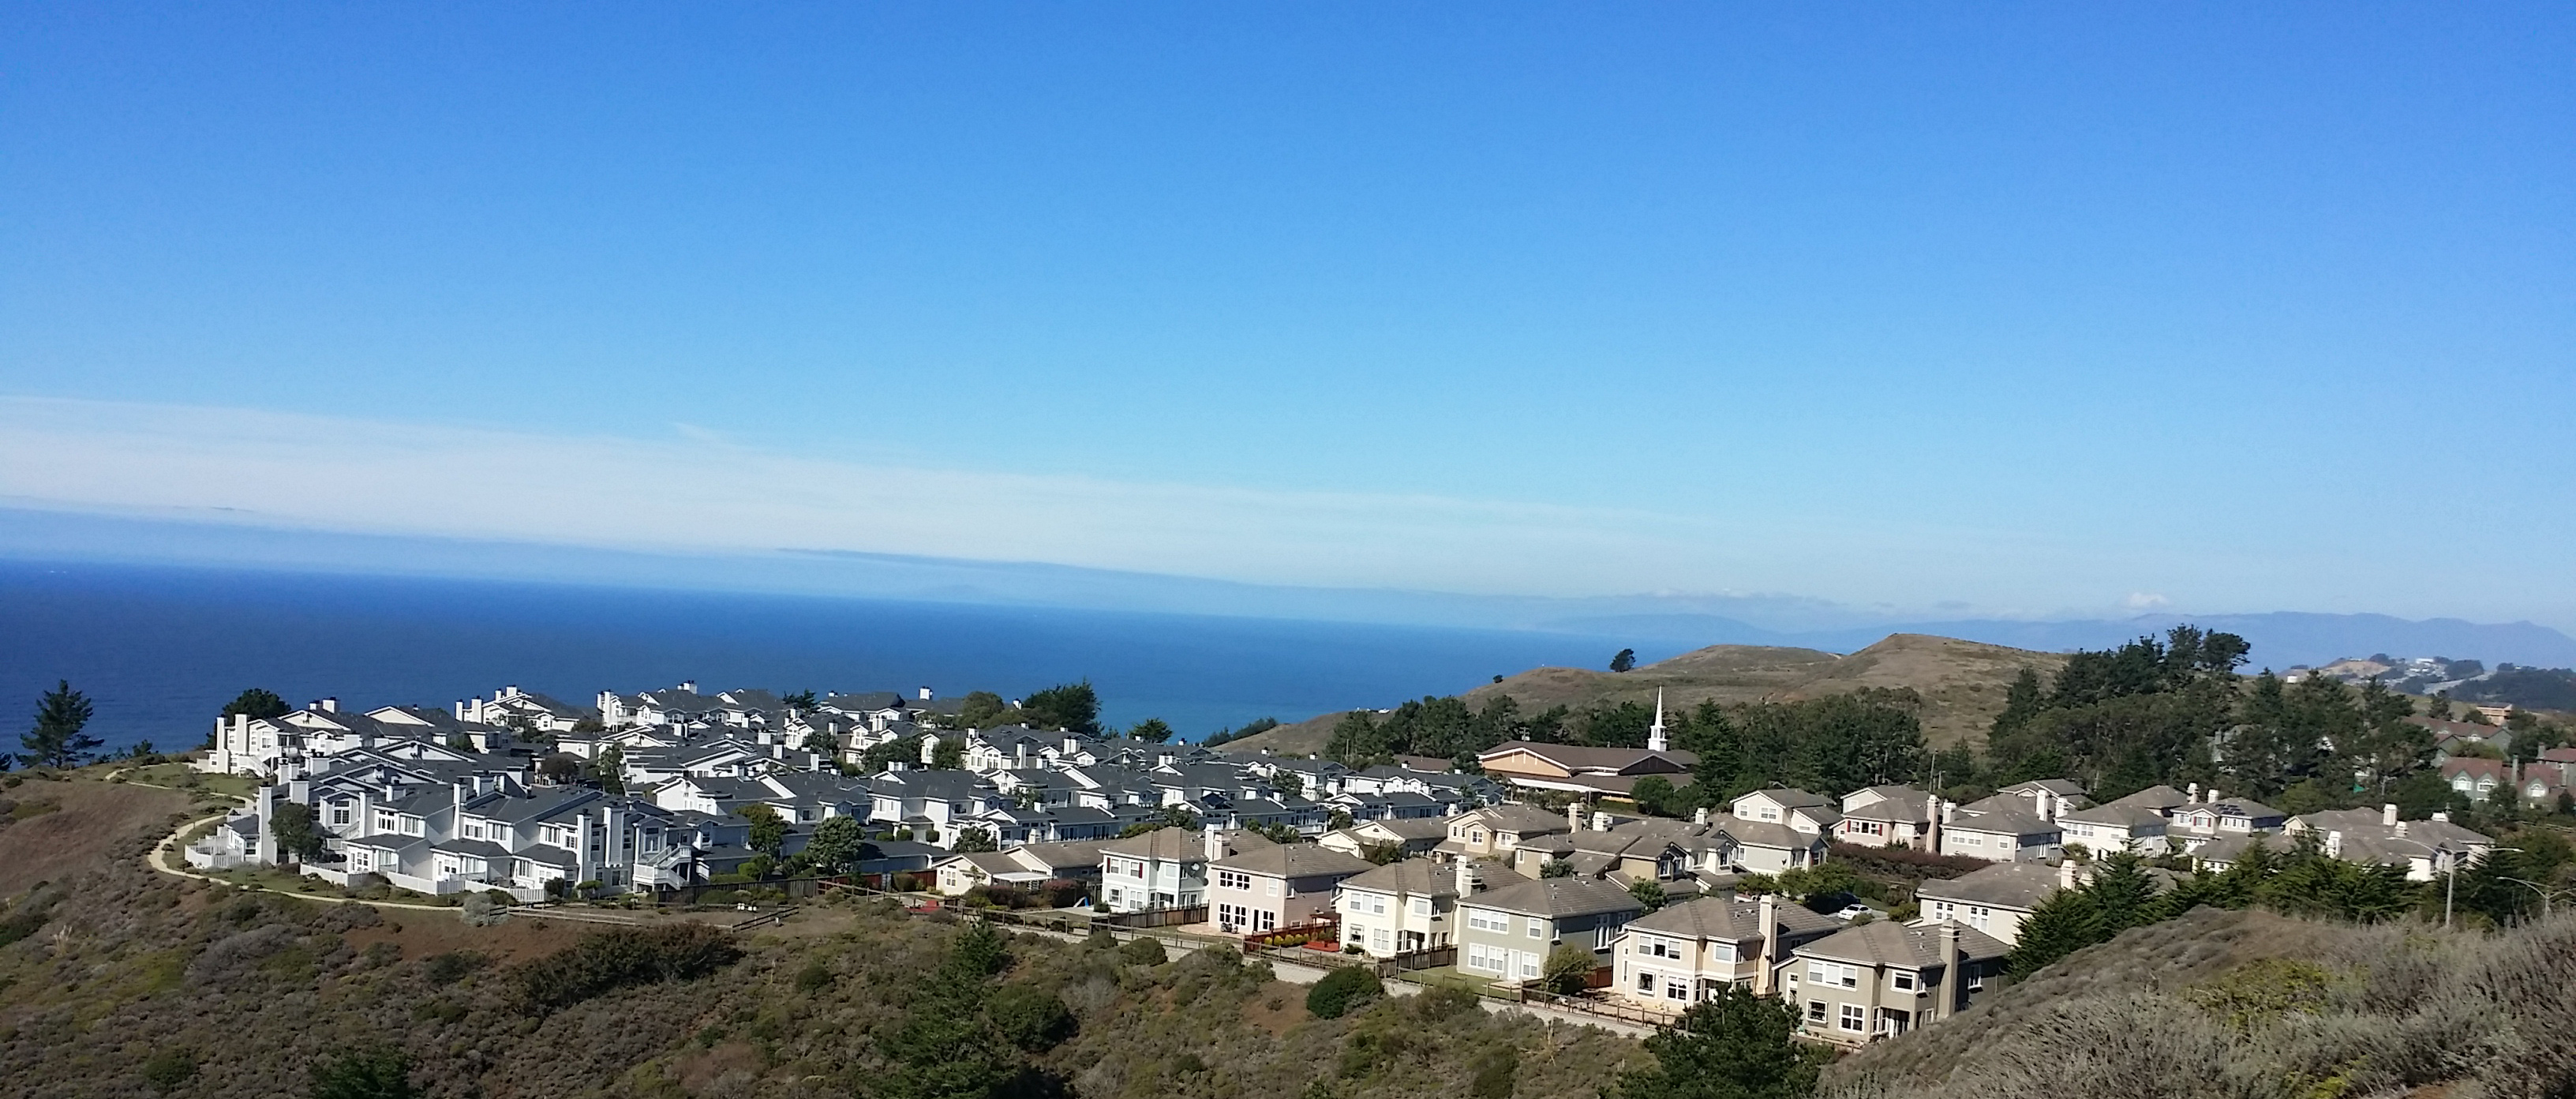 Pacifica homes with ocean views mariners pointe subdi for Pacifica house